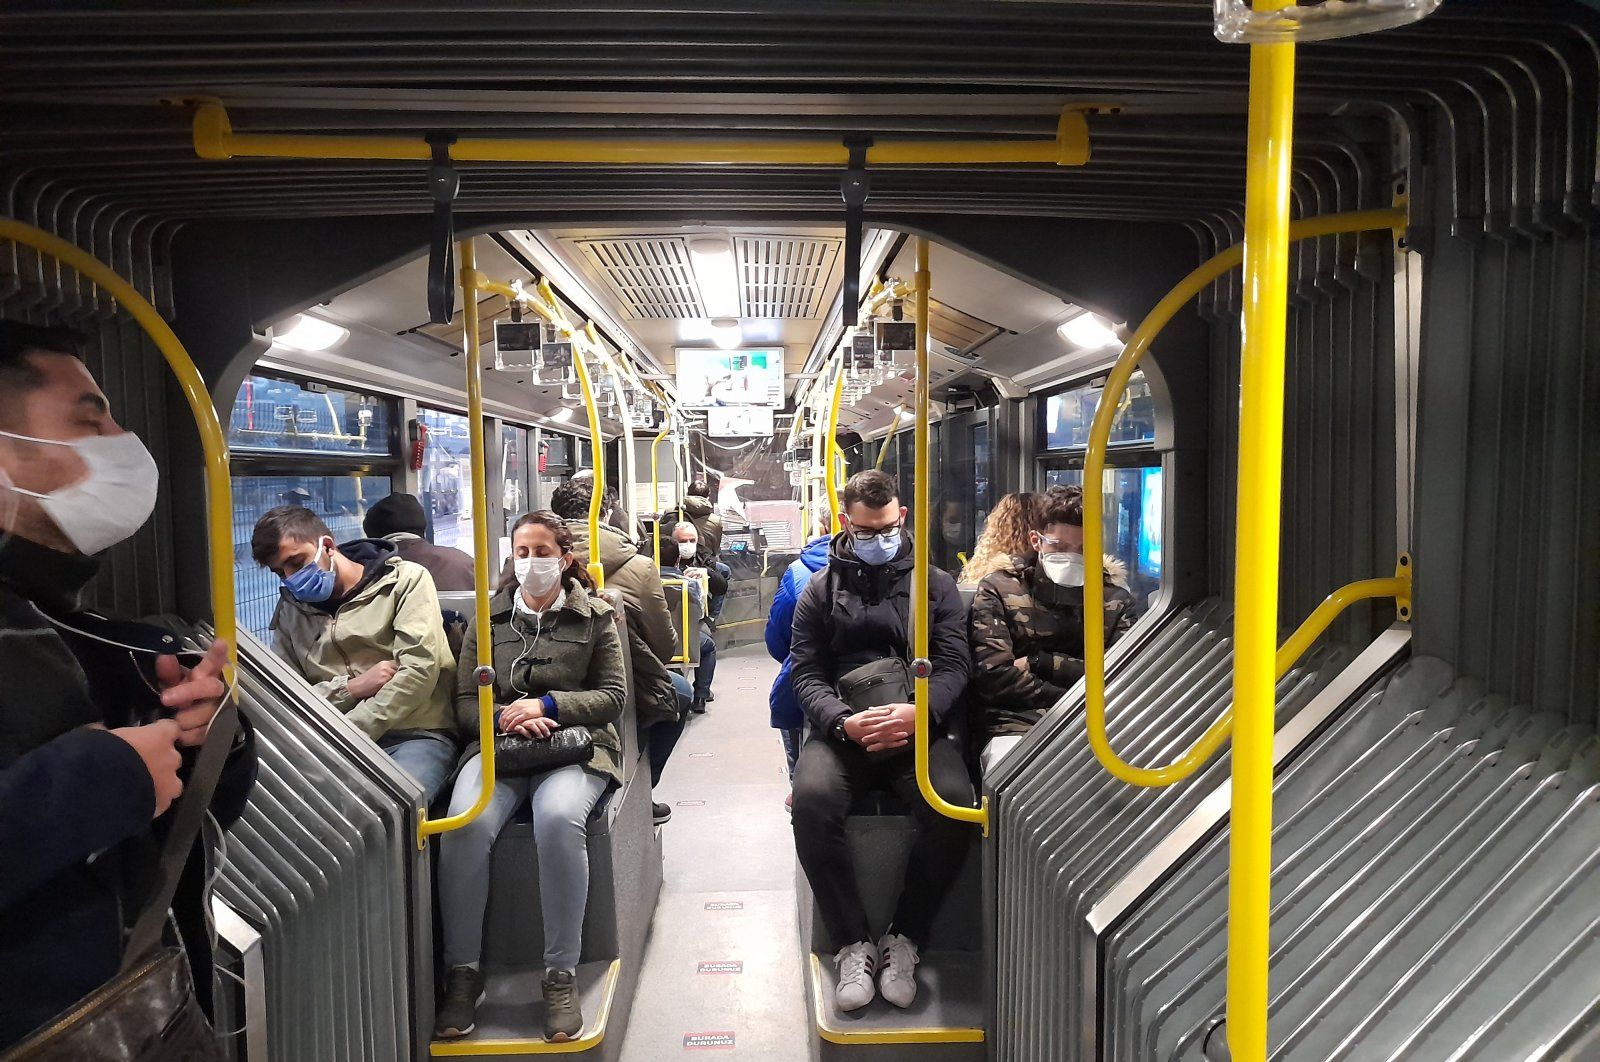 People travel in a largely empty metrobus, in Istanbul, Turkey, Dec. 11, 2020. (PHOTO BY ALİ OKTAY)